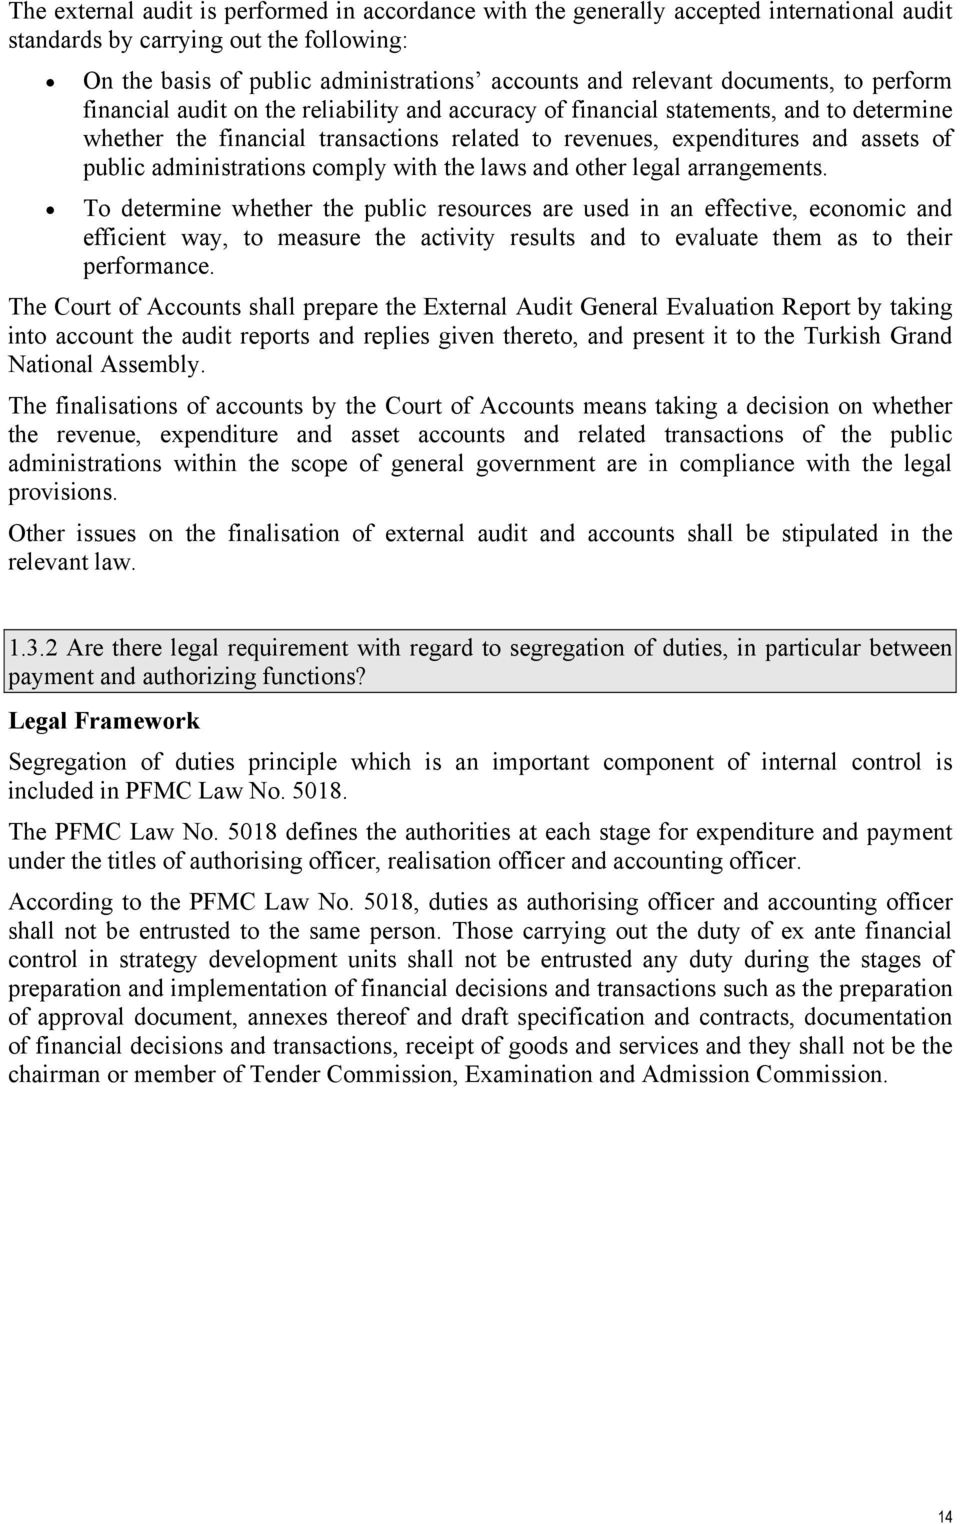 public administrations comply with the laws and other legal arrangements.